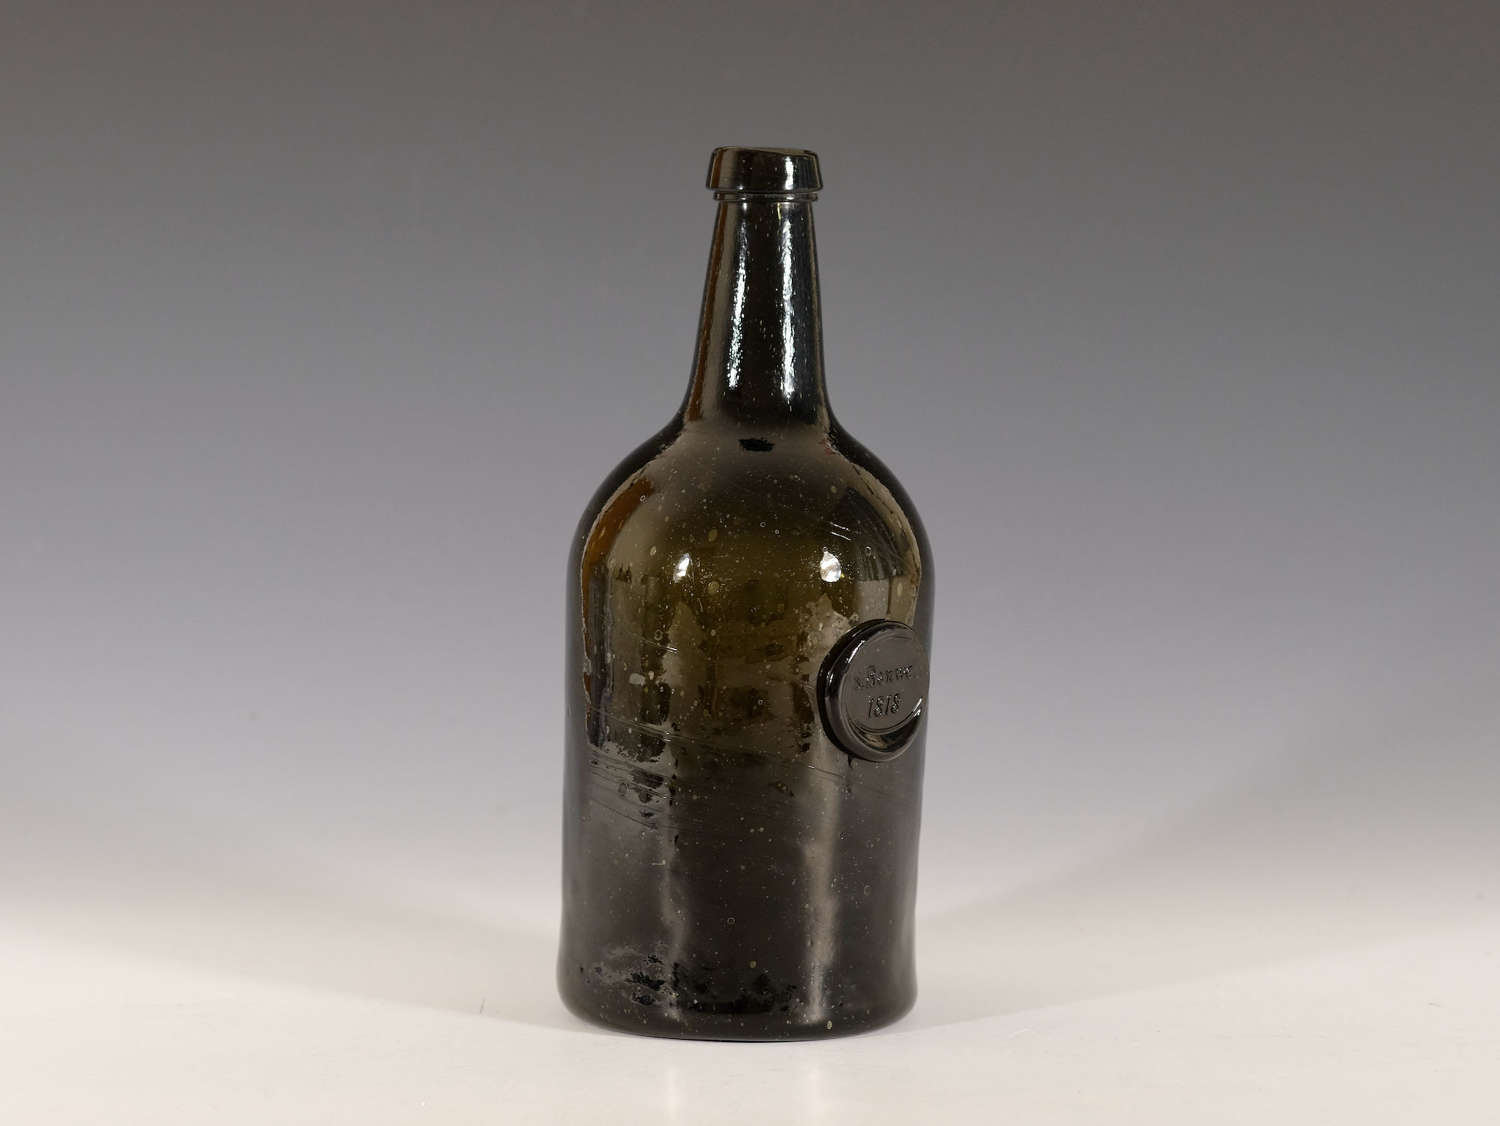 Wine bottle sealed S Banwell 1818